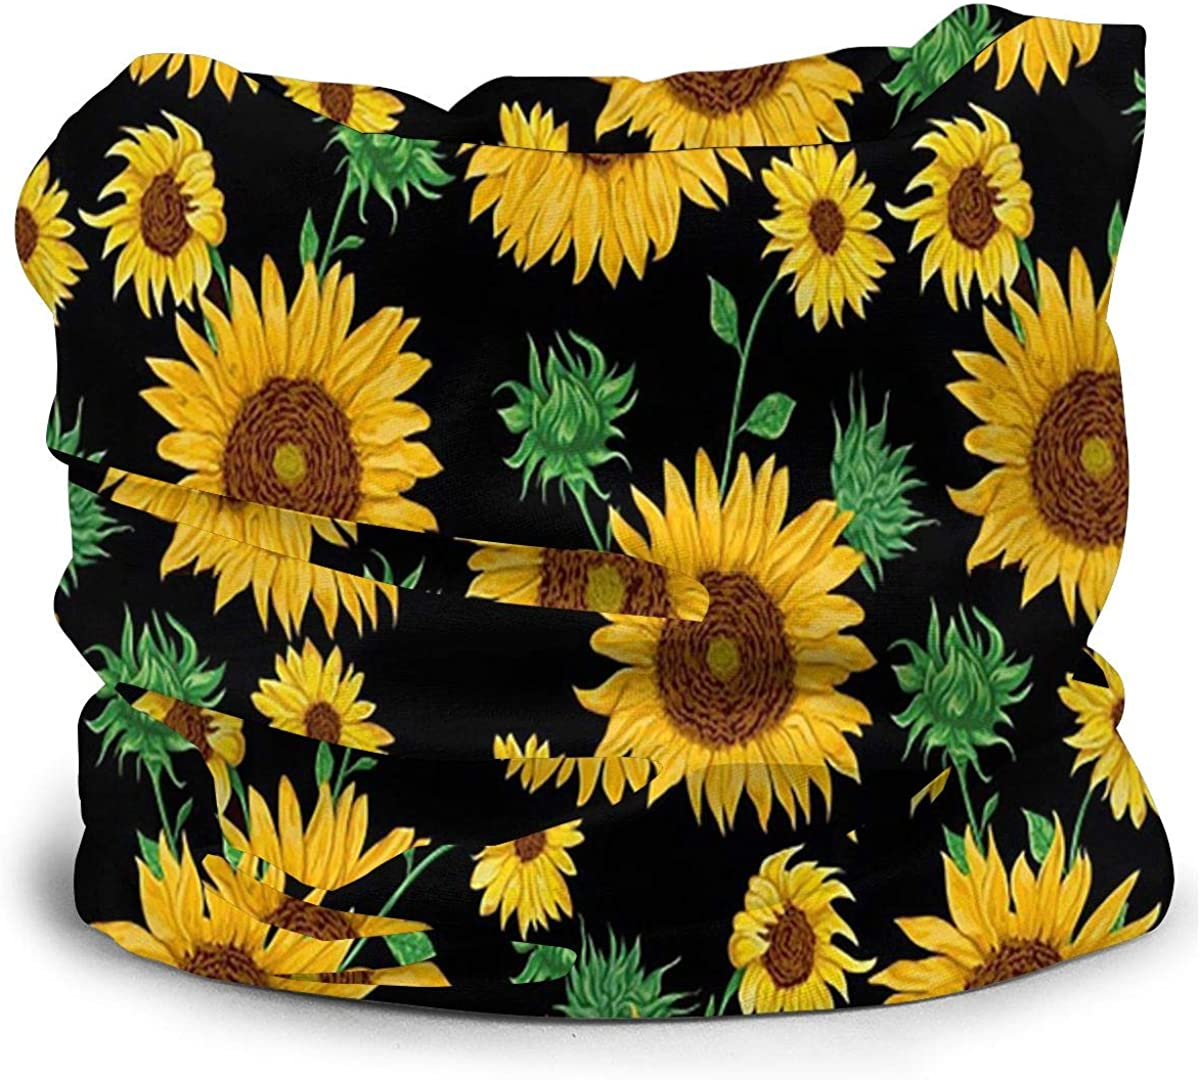 KiuLoam Sunflowers with Leaves on Black Seamless Face Mask Bandanas Neck Gaiter for Men and Women, Multifunction Headband Scarf for Dust, Outdoors, Sports